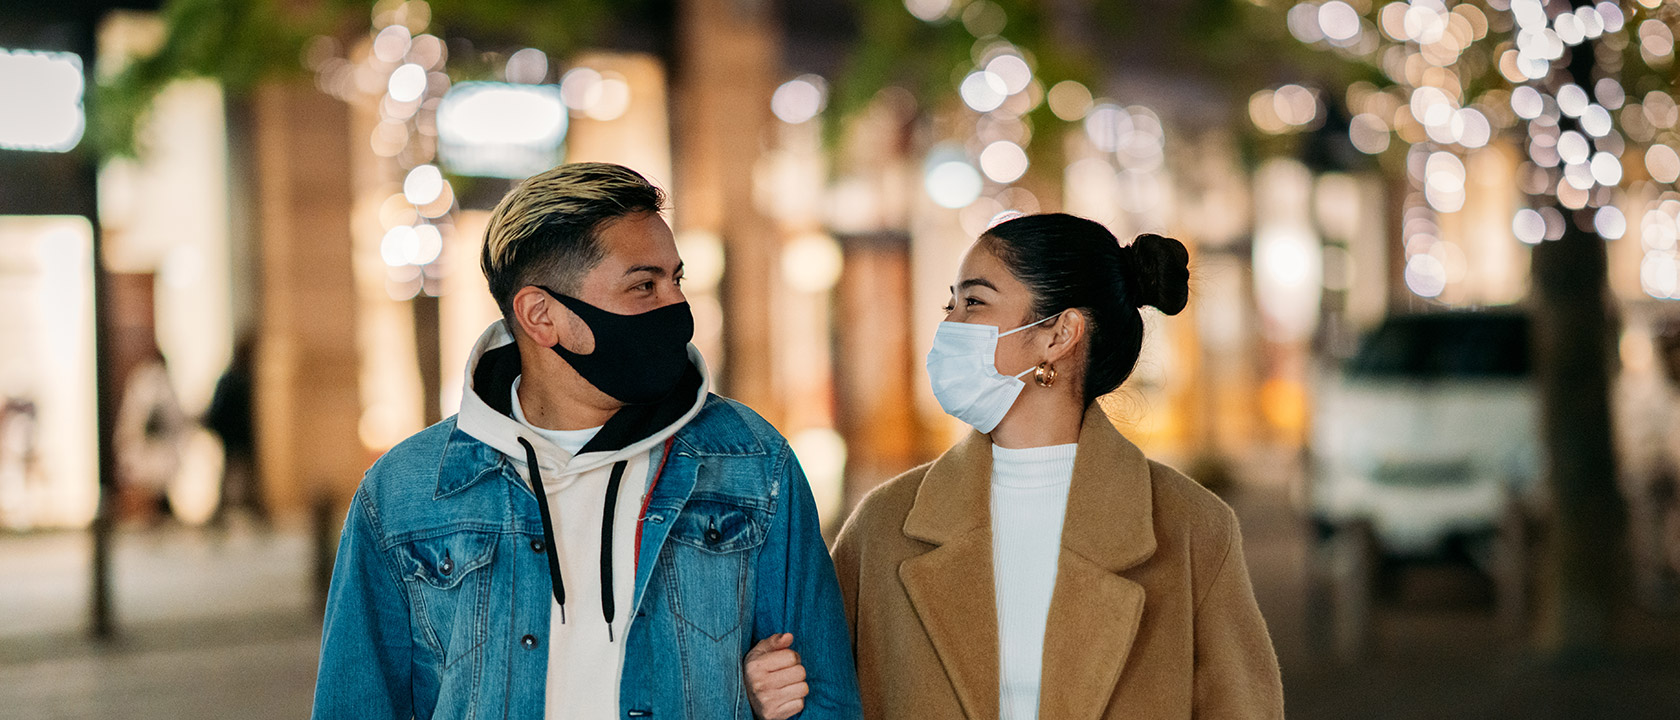 masked man and woman in downtown setting